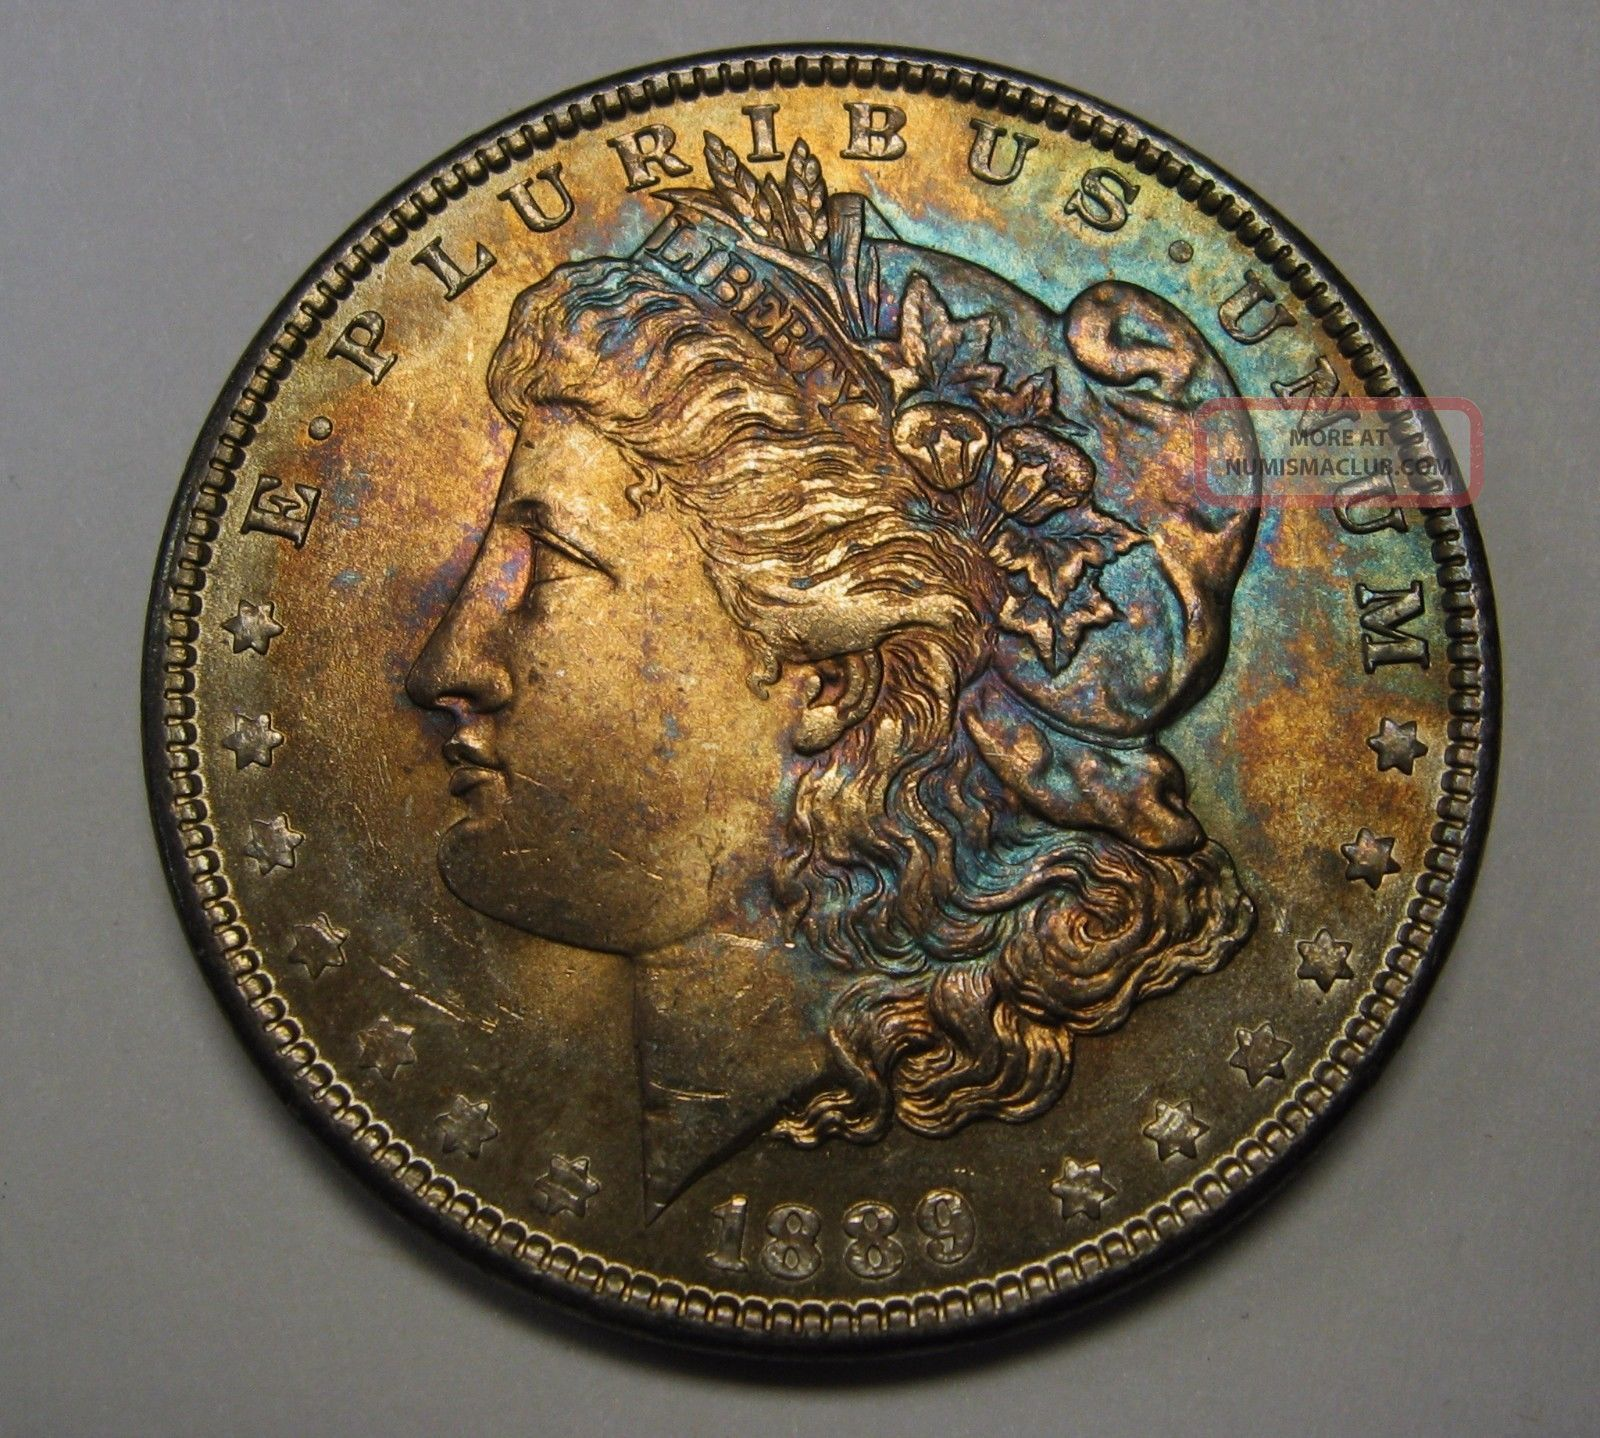 Stunning Rainbow Toned 1889 Morgan Silver Dollar Grading Gem Bu C43 Dollars photo